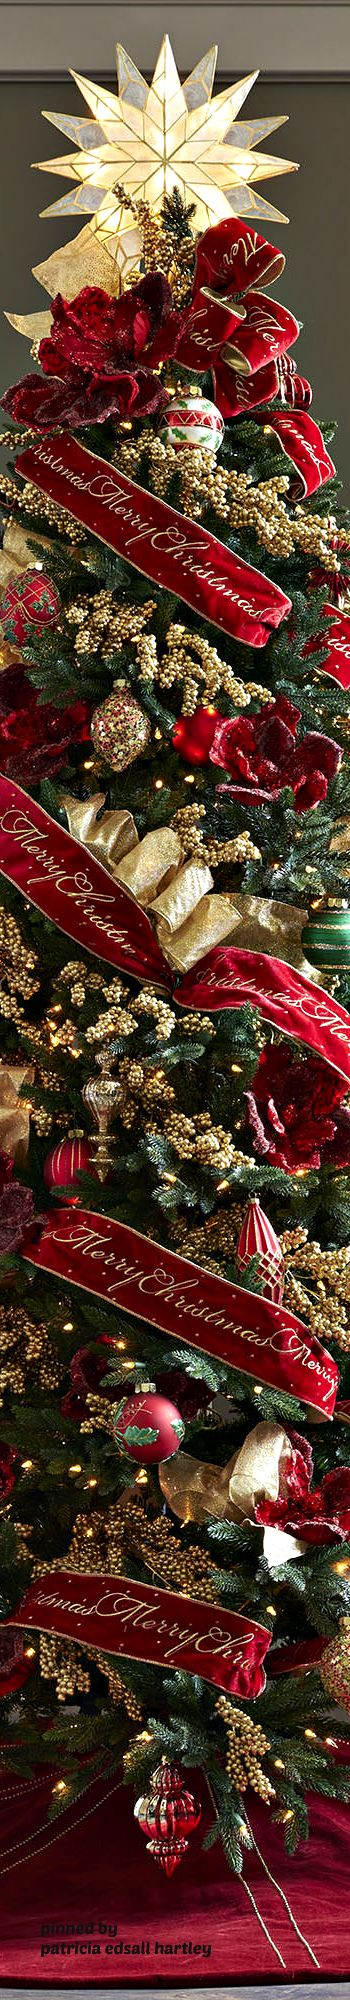 CHRISTMAS TREE~RED & GOLD TREE